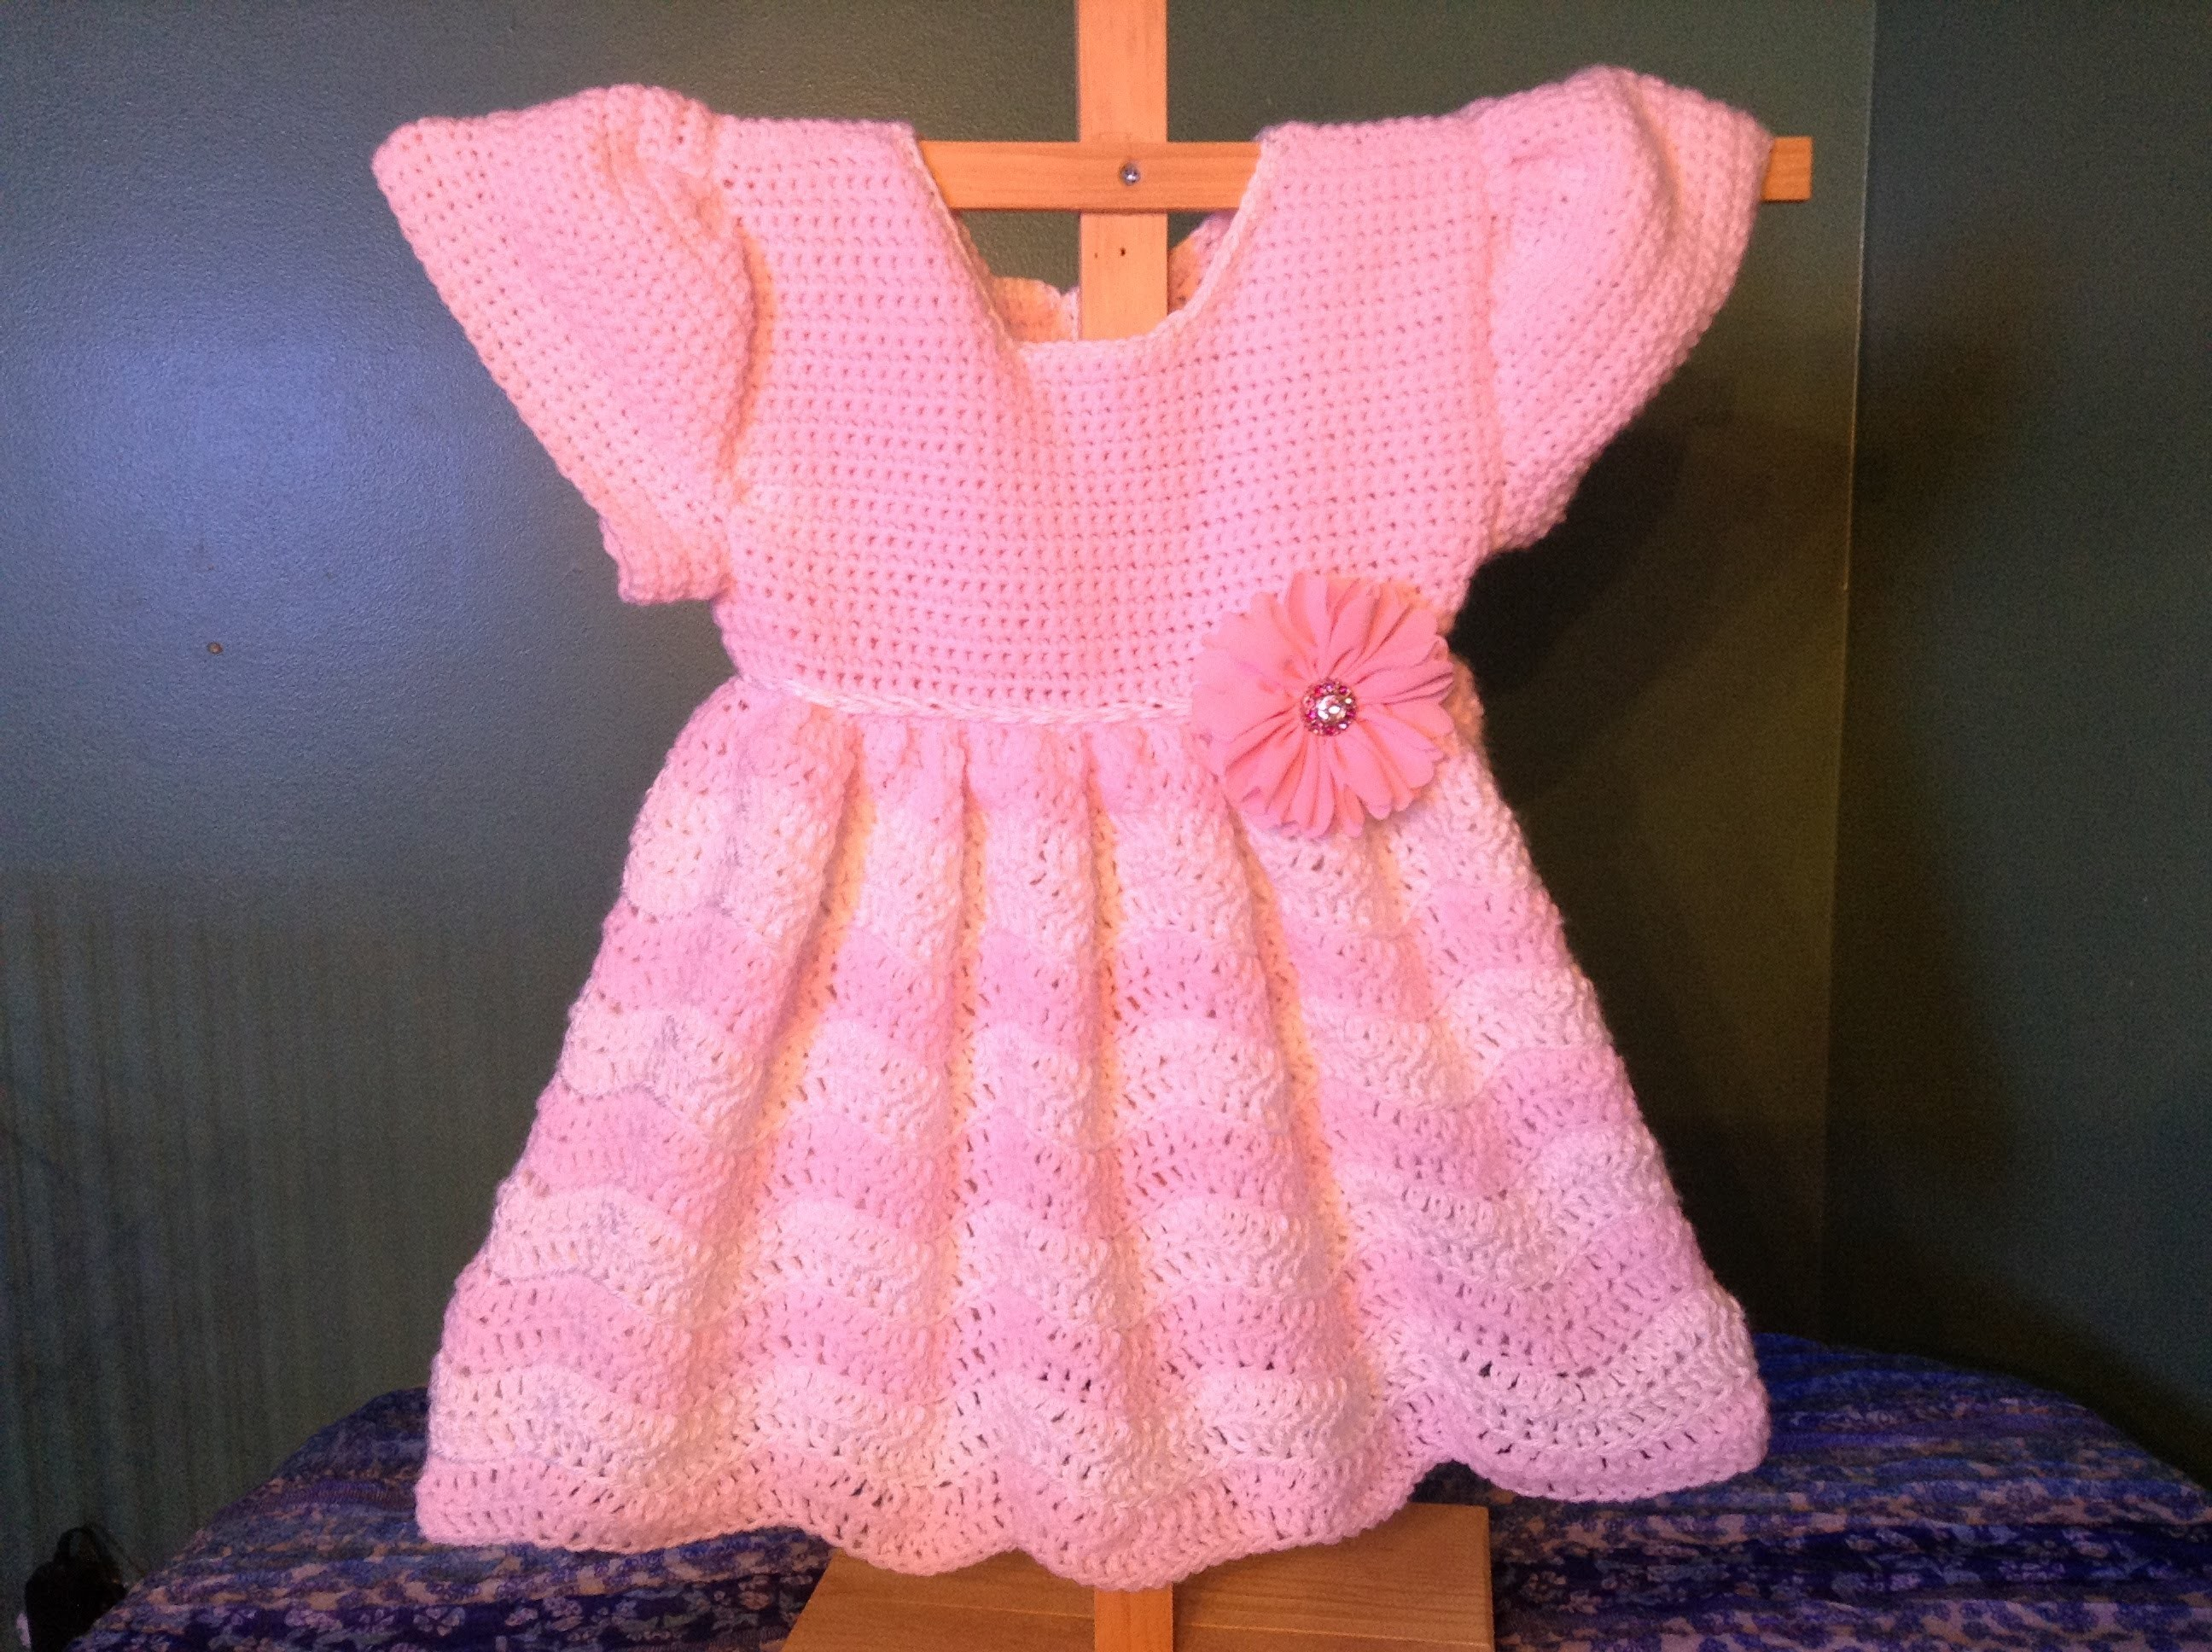 How to Crochet a Baby Dress Wave Ripple stitch